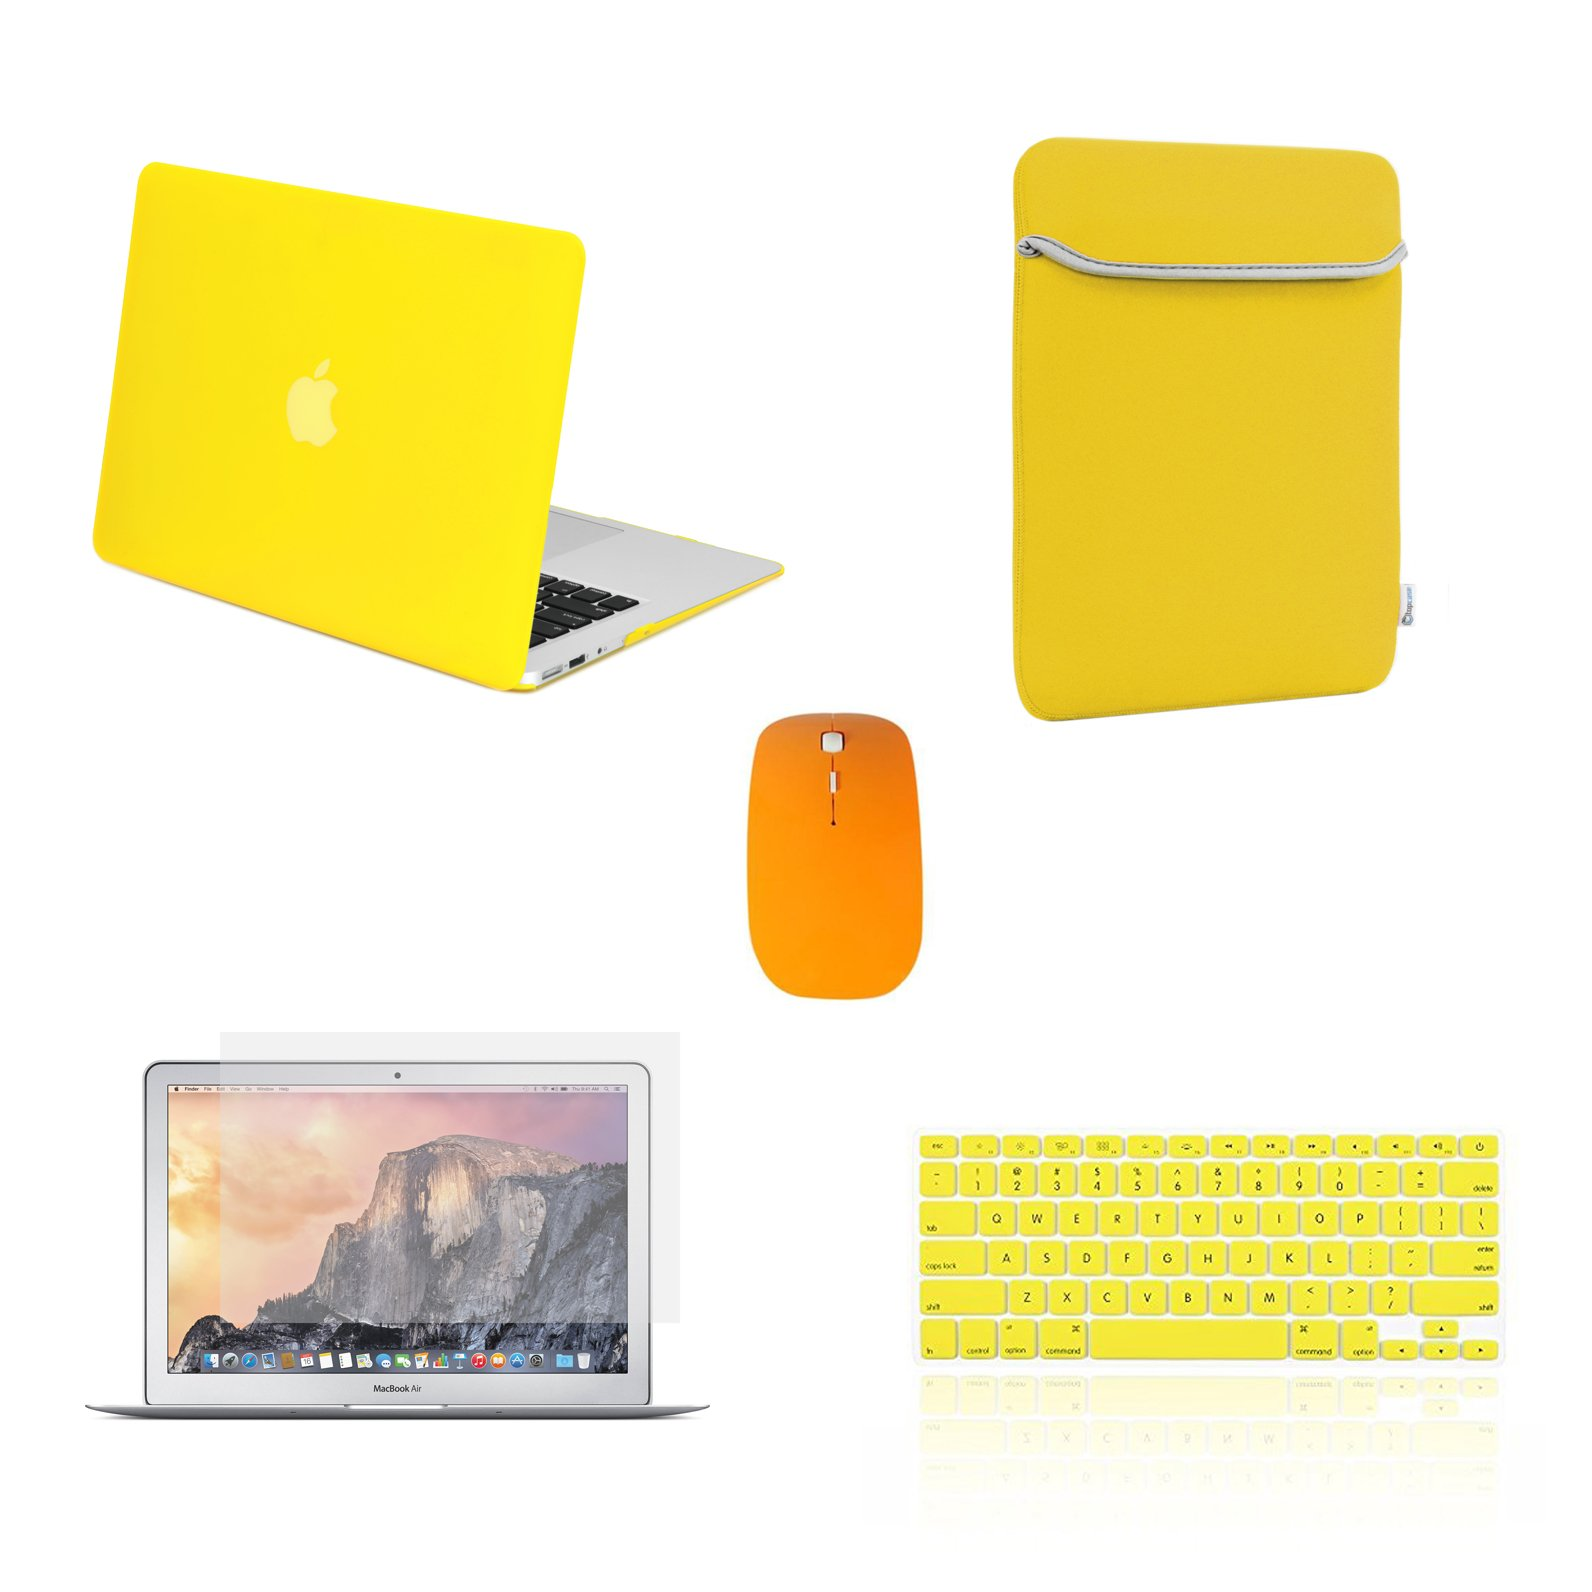 TOP CASE - 5 in 1 Rubberized Hard Case, Keyboard Cover, Screen Protector, Sleeve, Mouse Compatible with MacBook Air 13'' A1369 & A1466 - Not Compatible 2018 Version A1932 Retina Display - Yellow